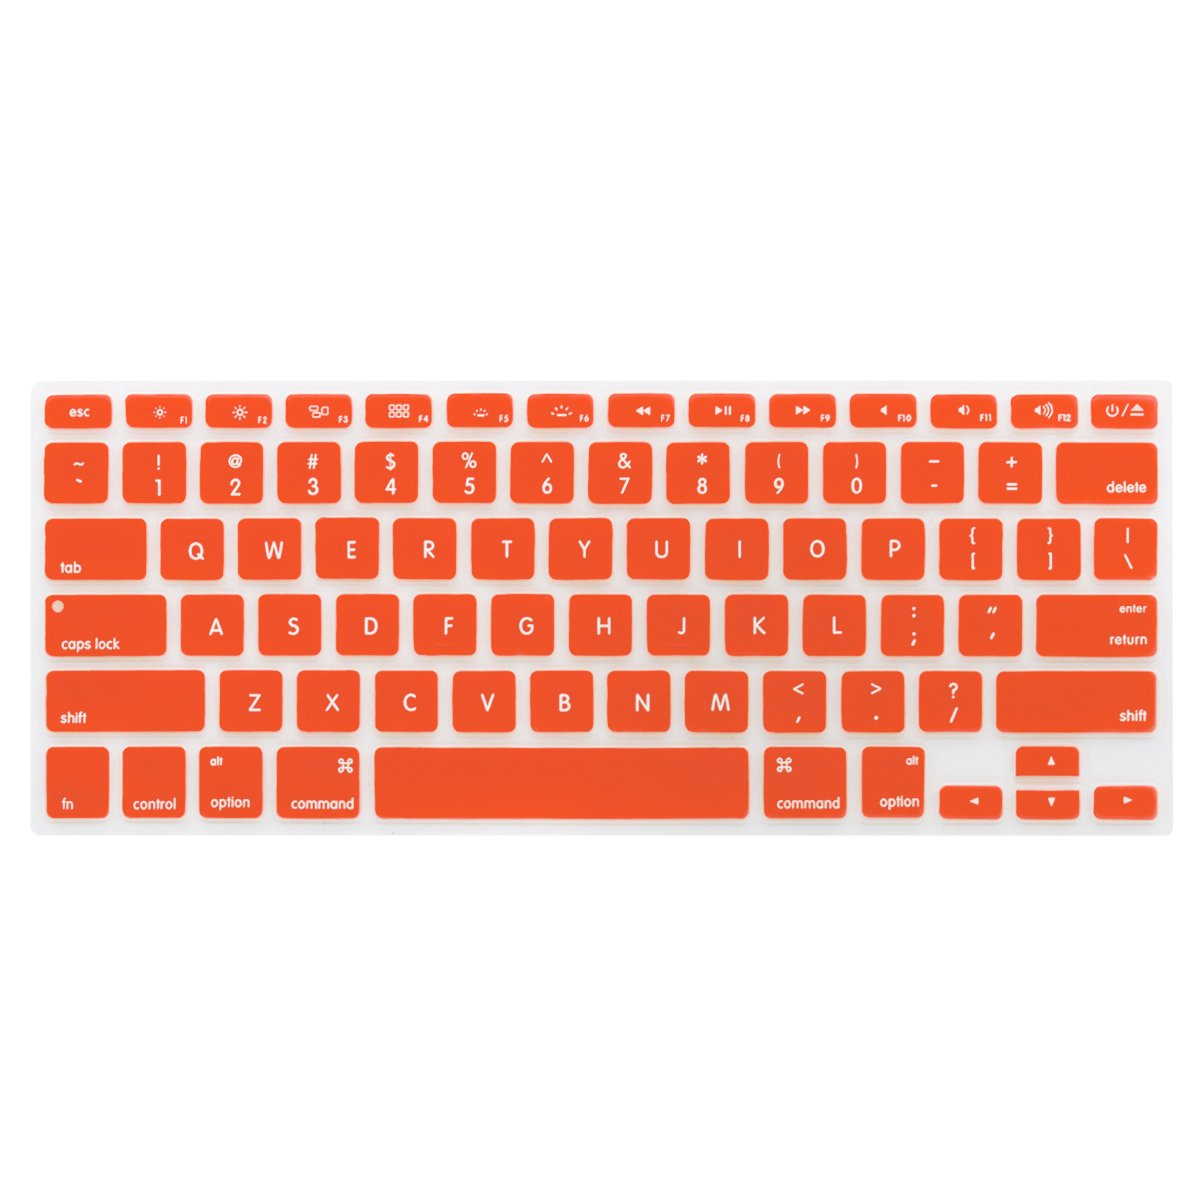 LENTION Silicone Keyboard Cover Protector for Apple MacBook Pro 13 15 17 Inch (with or without Retina Display, 2015 or Older Version) and MacBook Air 13 Inch, Ultra Thin Soft Skin (Orange)